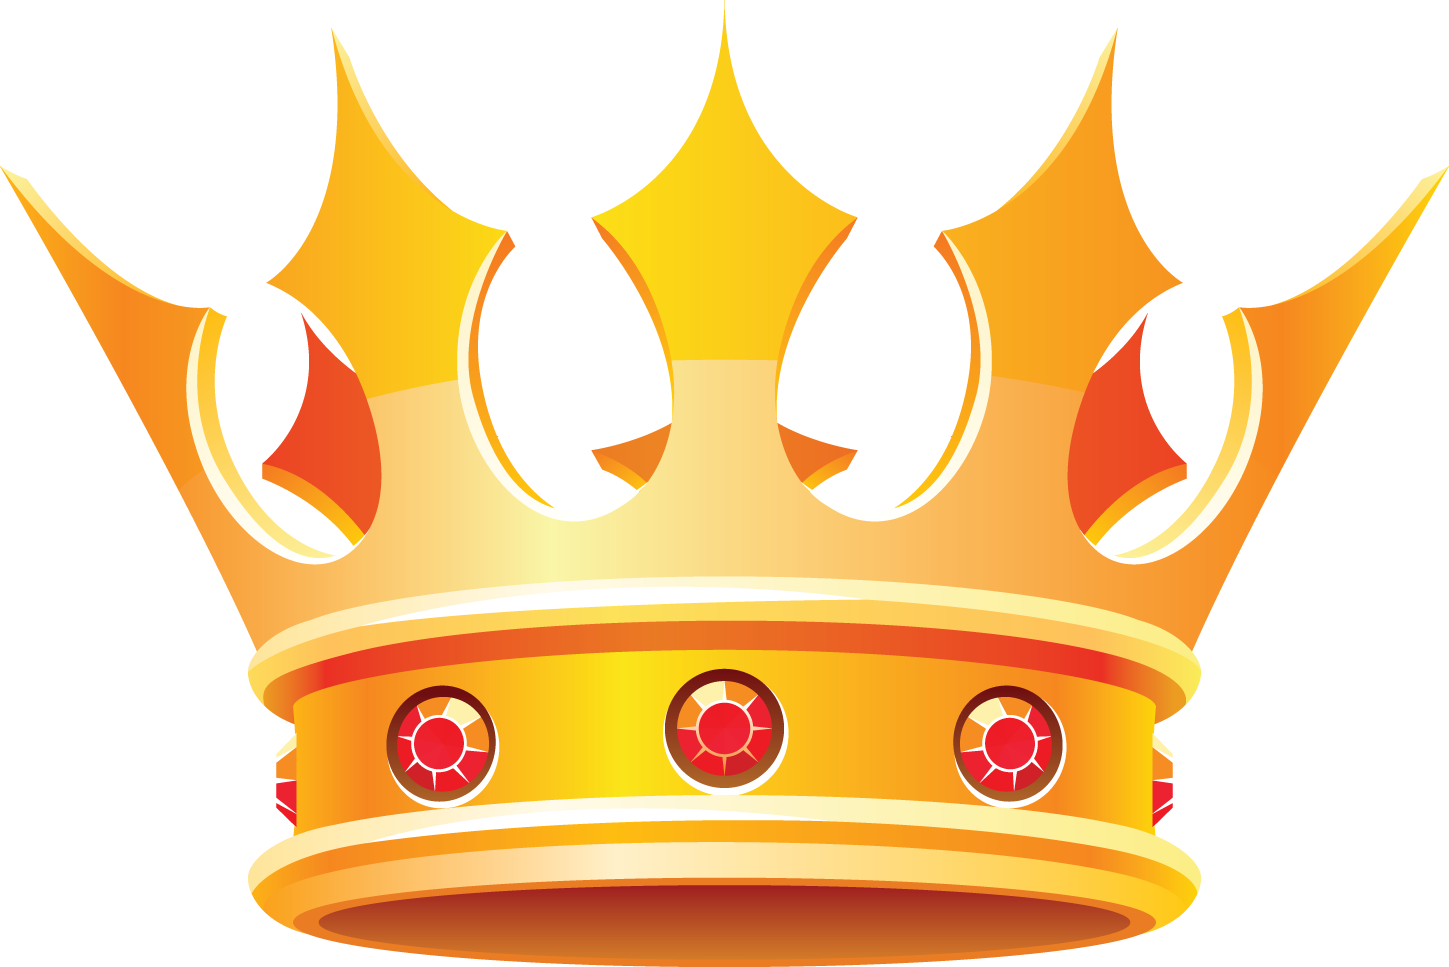 Royal queen crown clipart jpg library download Queen Crown Clipart at GetDrawings.com | Free for personal use Queen ... jpg library download